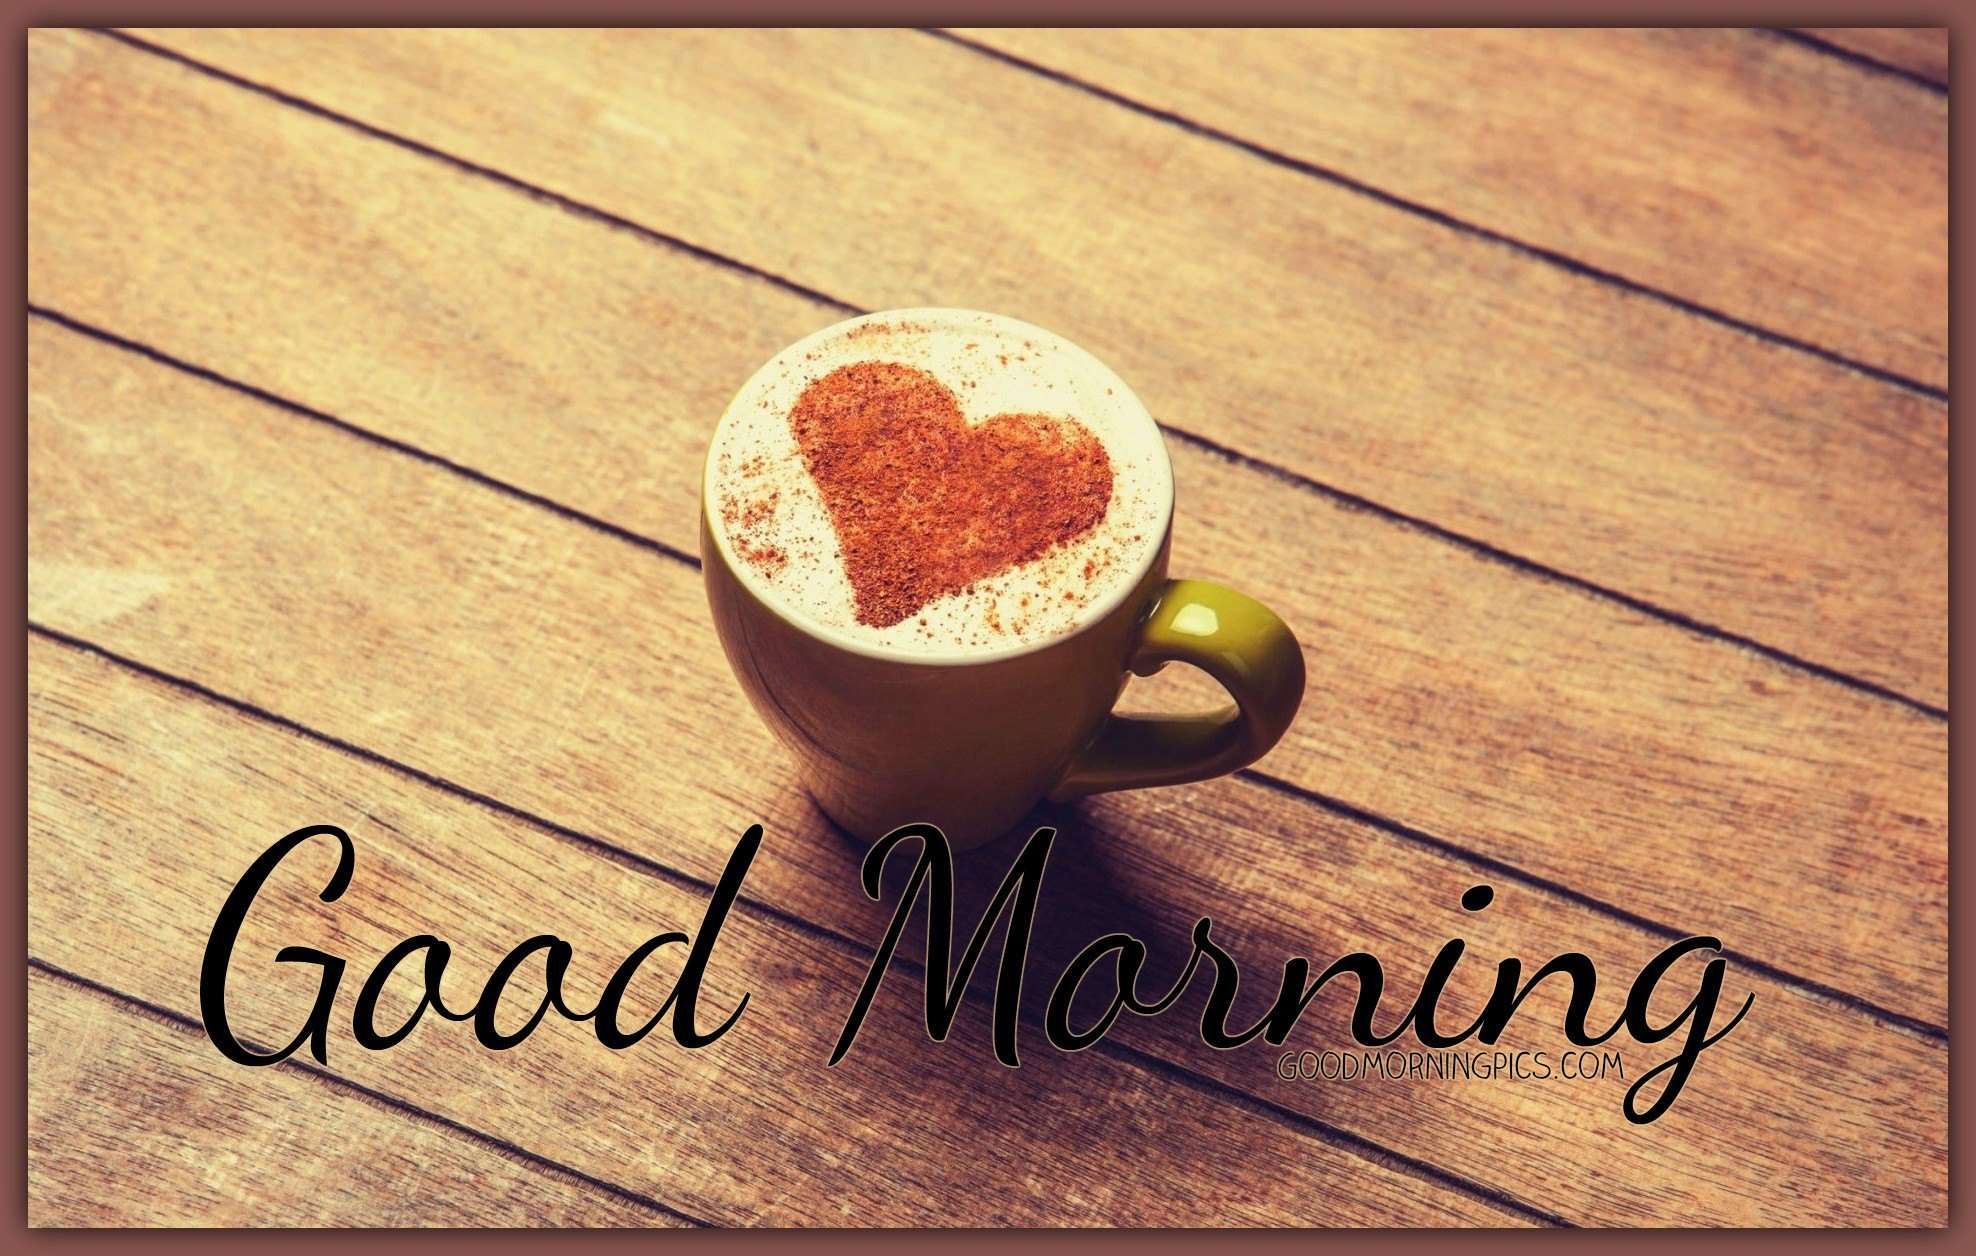 Wallpaper Good Morning My Love : Good Morning love coffee and quote goodmorningpics.com